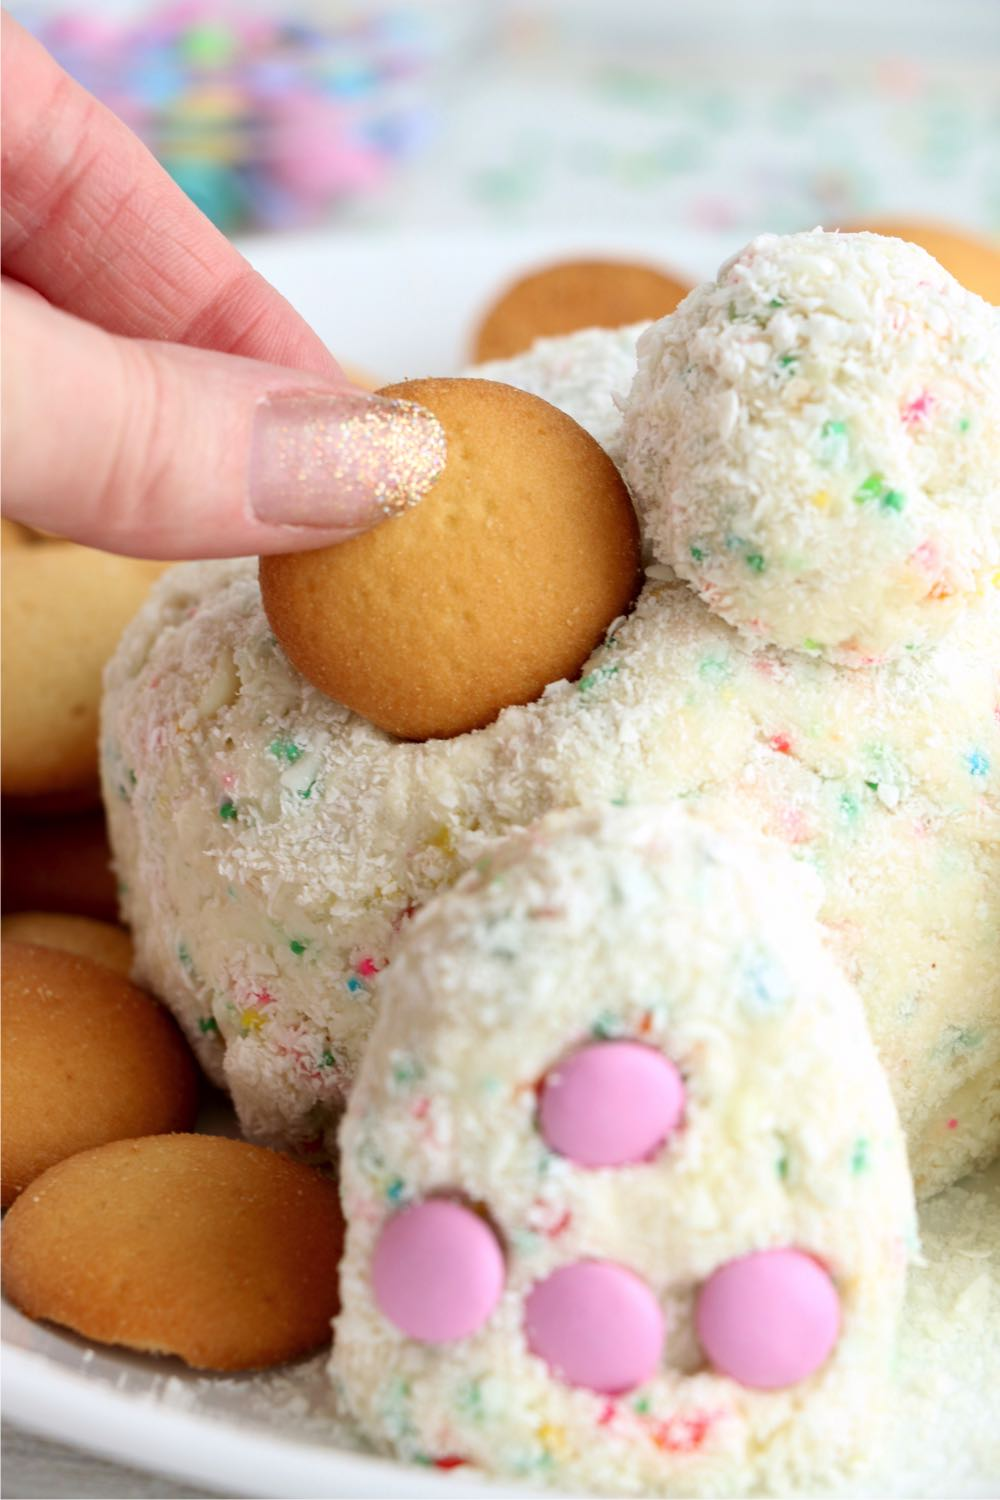 dipping a vanilla wafer in an Easter cheese ball